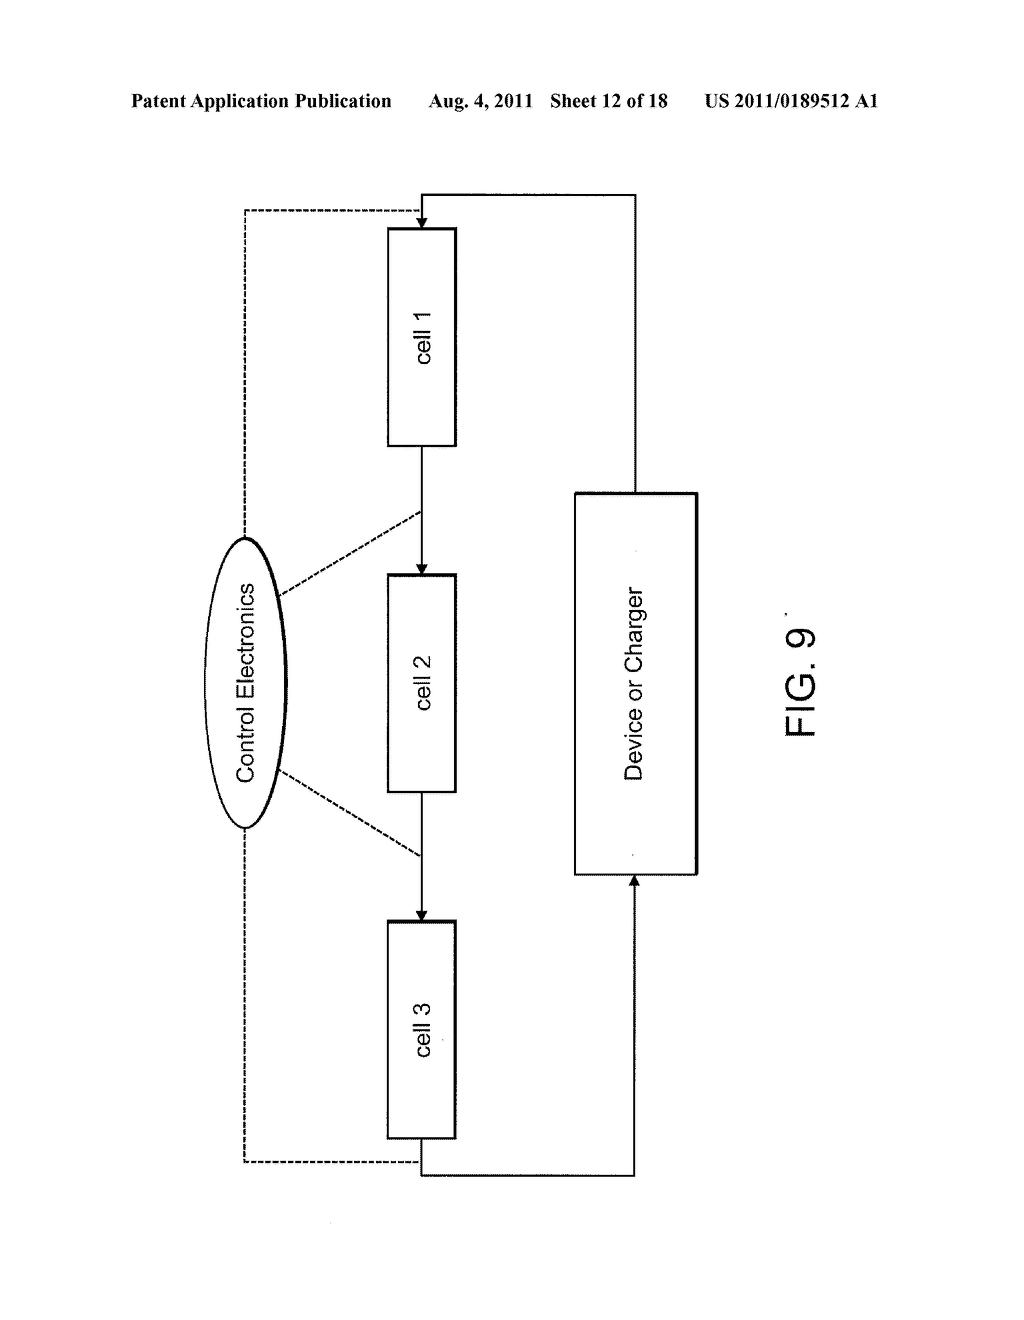 Cid Retention Device For Li Ion Cell Diagram Schematic And Image 13 Simple Lithium Charger 2 Circuit